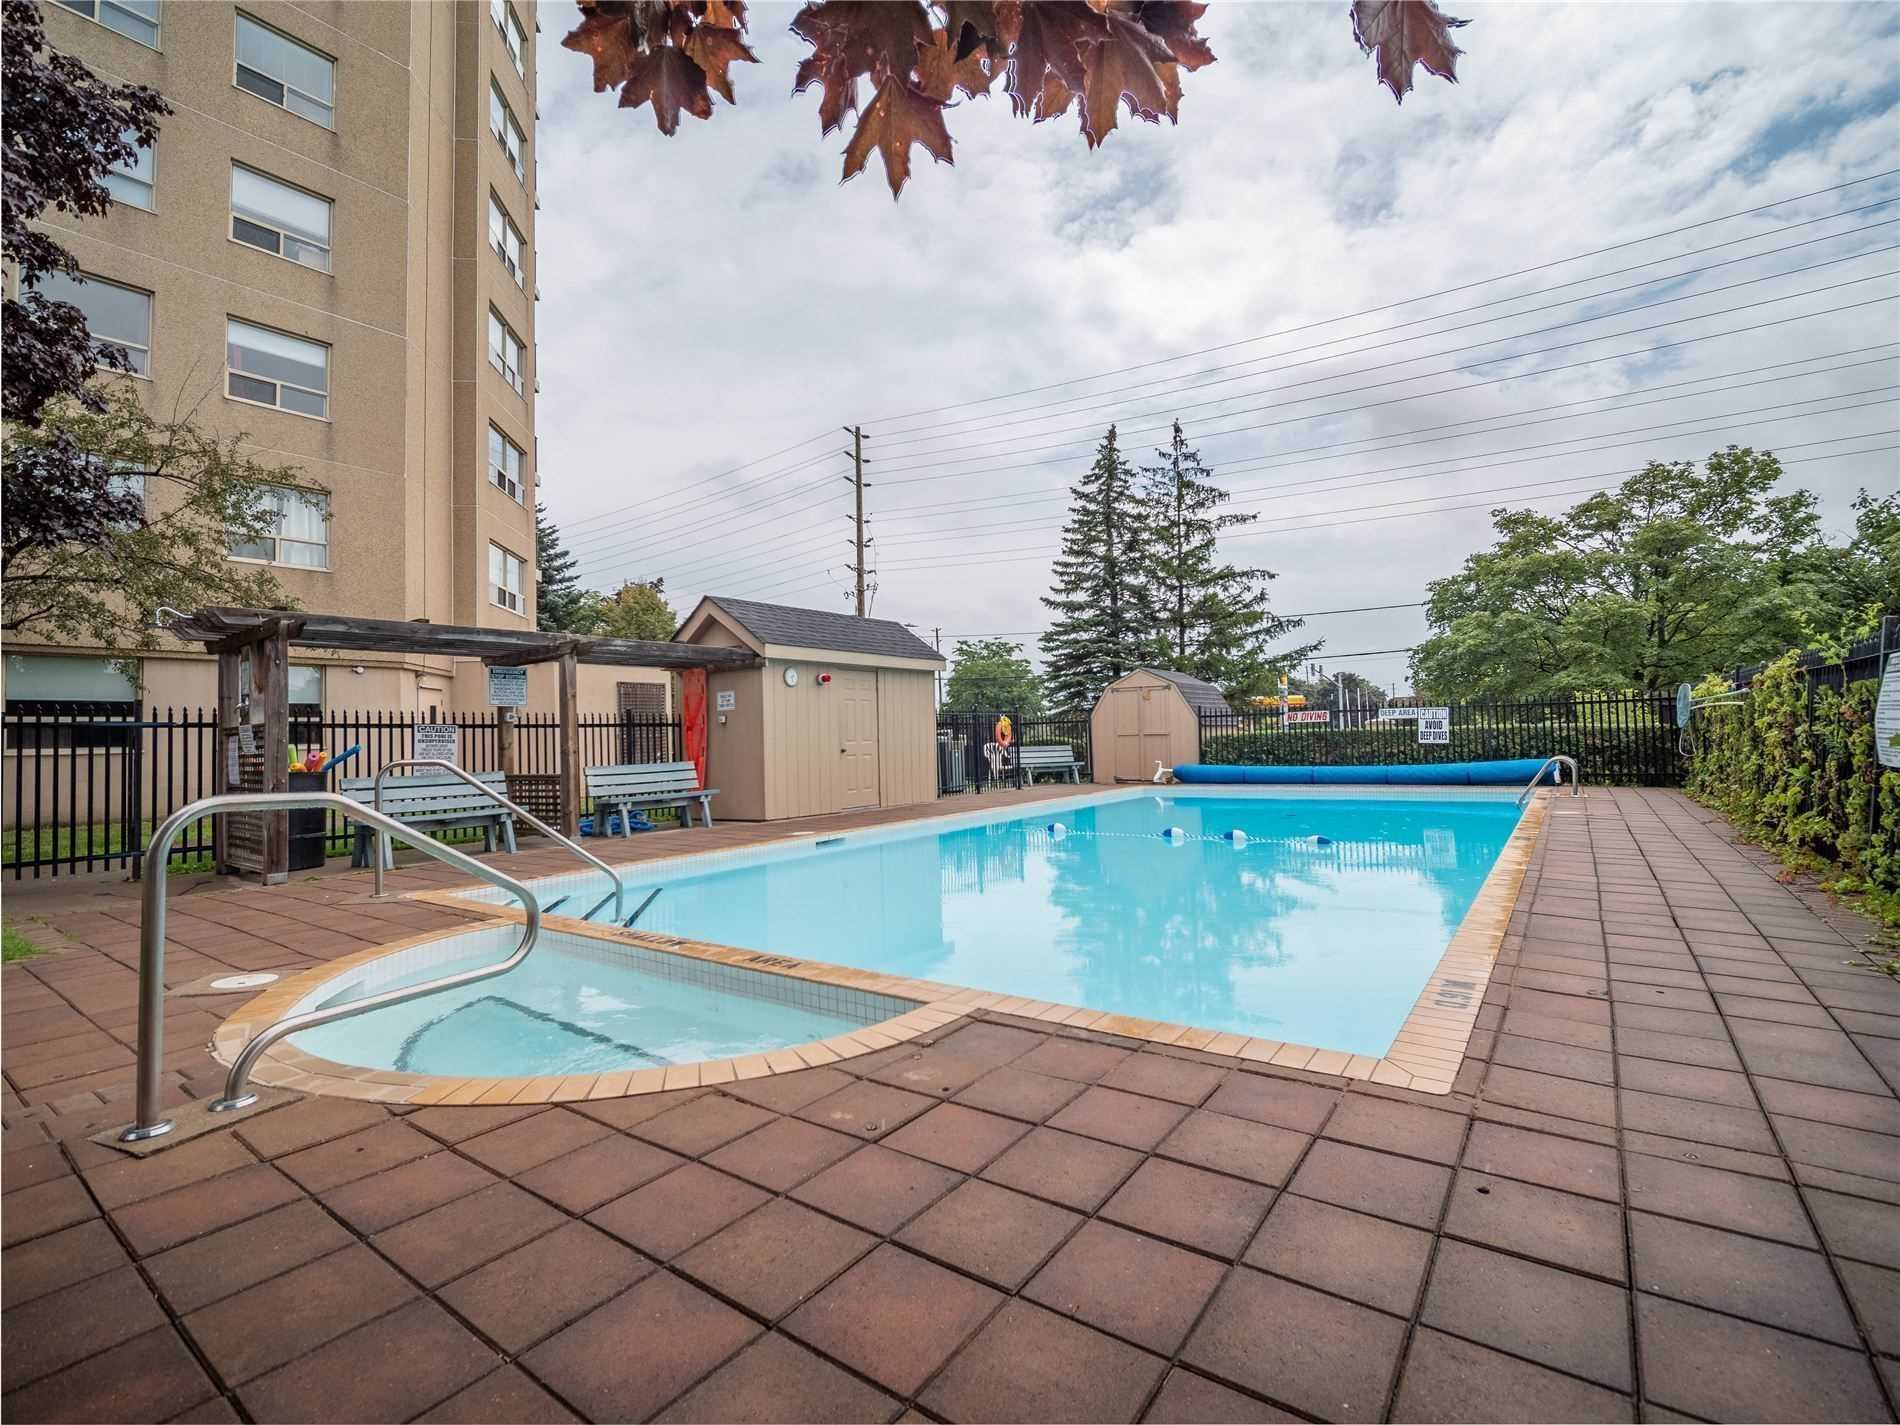 Image 17 of 25 showing inside of 2 Bedroom Condo Apt Apartment for Sale at 2 Westney Rd N Unit# 1203, Ajax L1T3H3